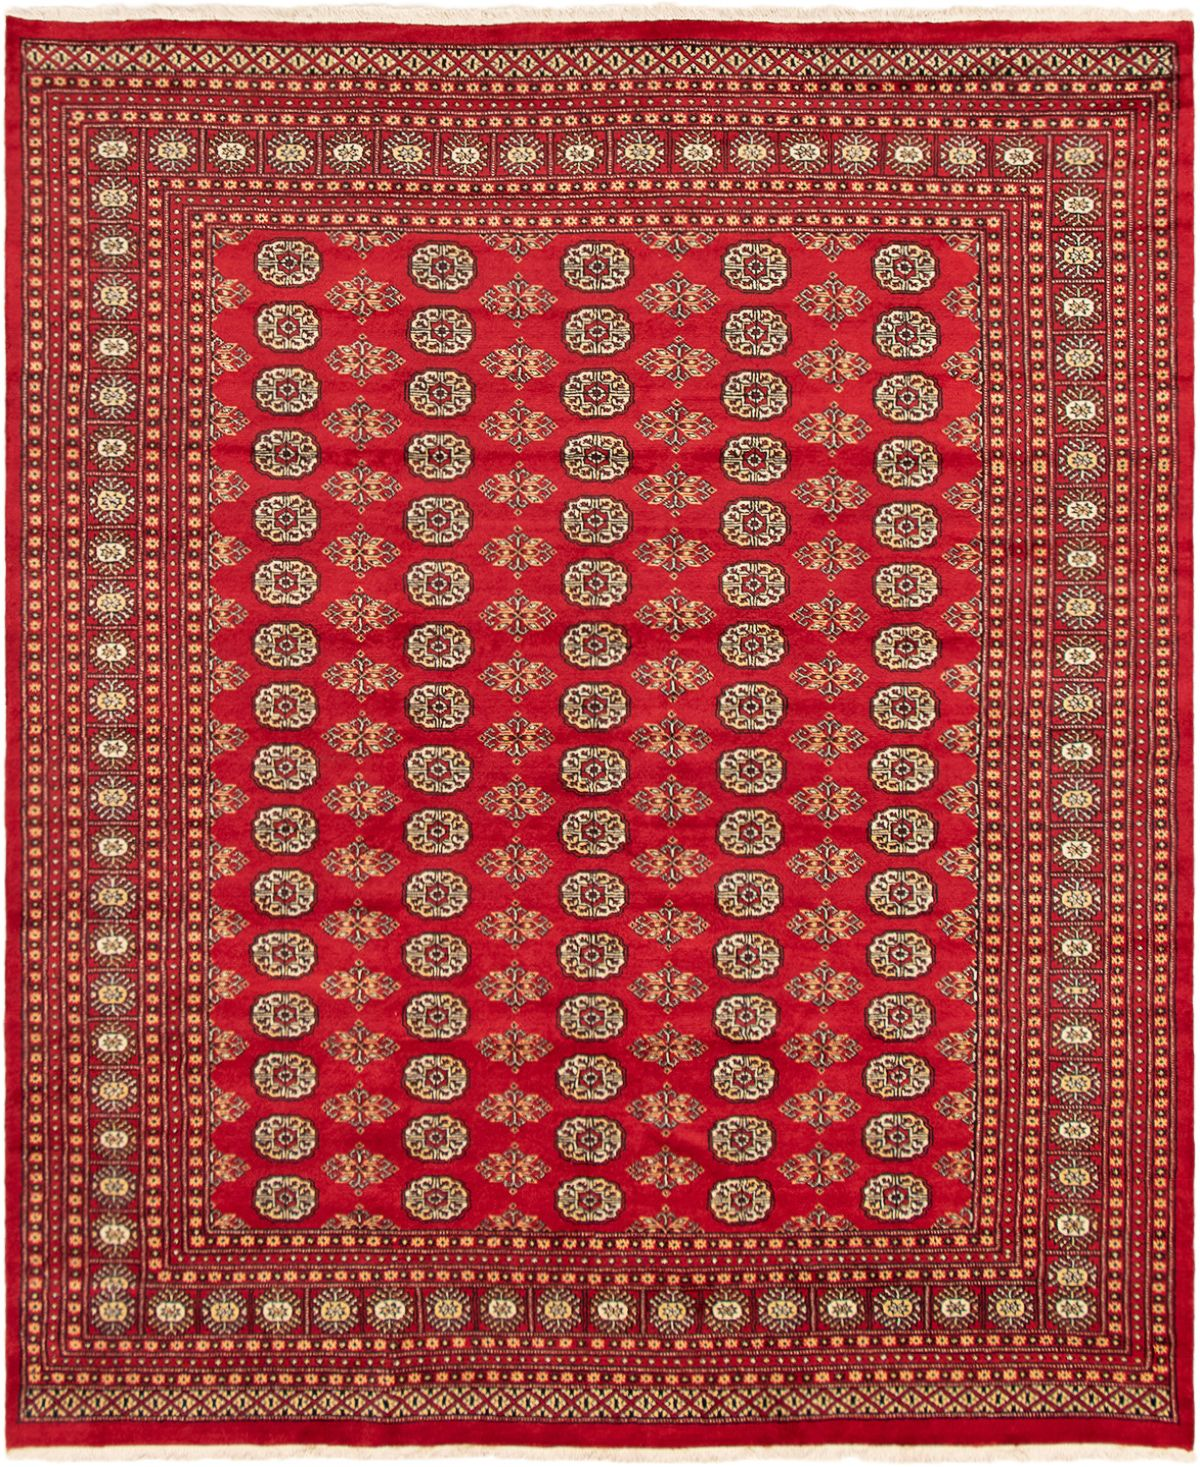 """Hand-knotted Finest Peshawar Bokhara Red Wool Rug 8'0"""" x 9'7"""" Size: 8'0"""" x 9'7"""""""